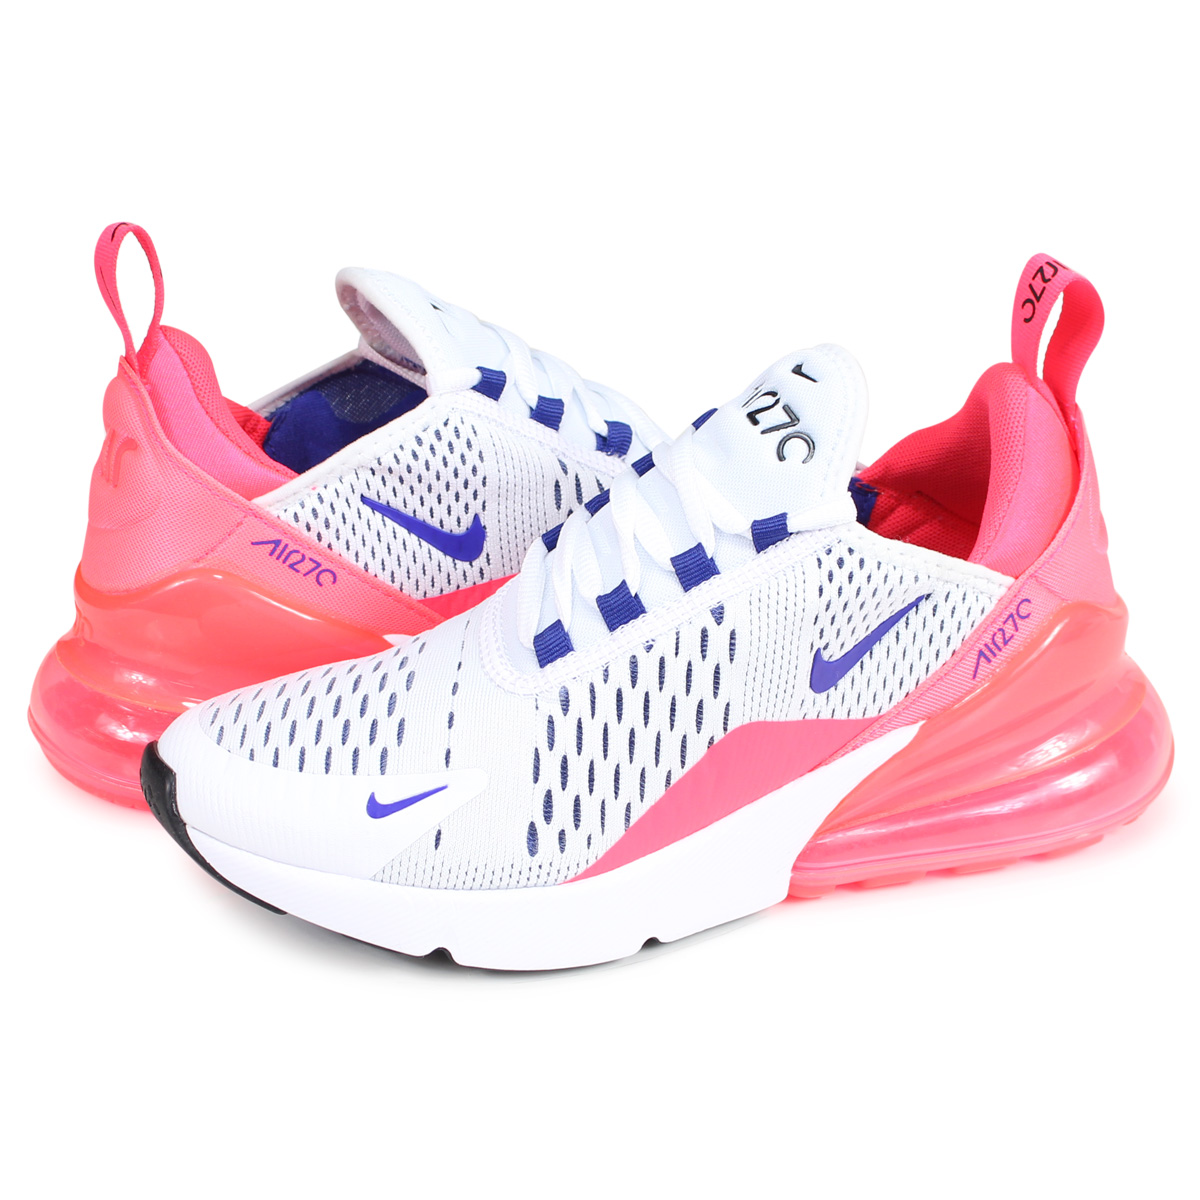 huge discount 5ff4e 76ec1 Nike NIKE Air Max 270 sneakers Lady s WMNS AIR MAX 270 white AH6789-101   2 21 Shinnyu load   192